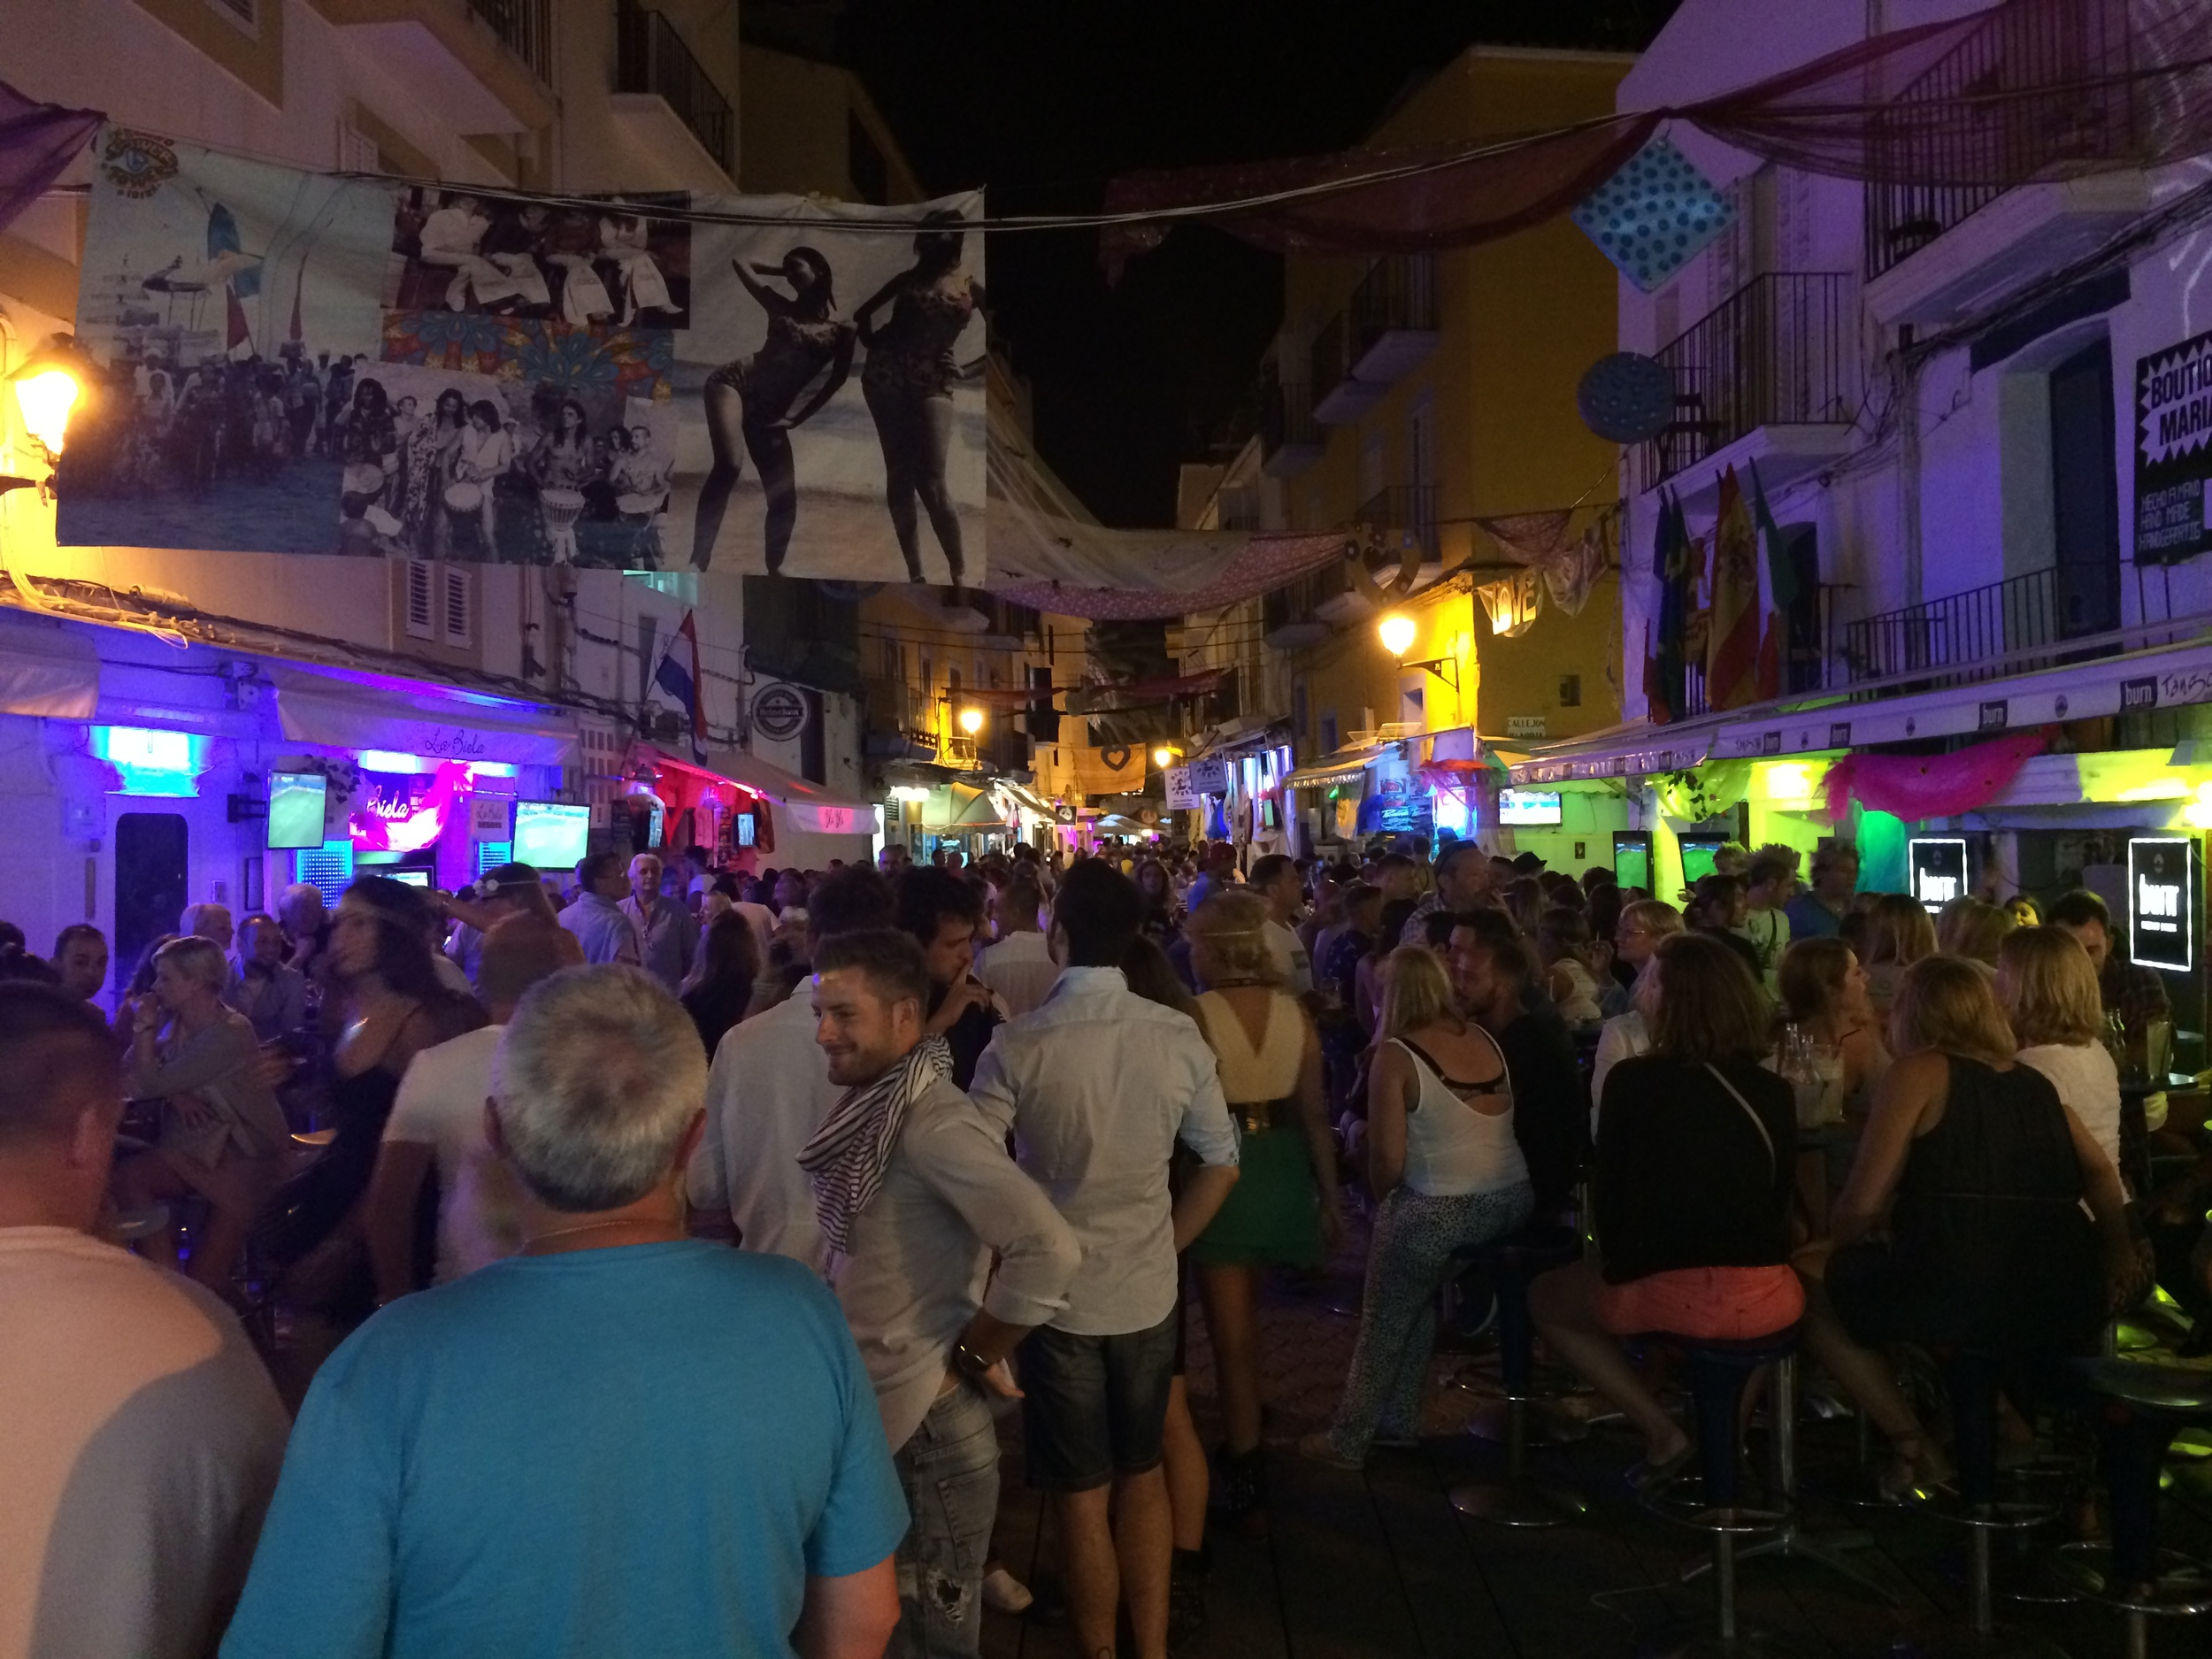 The streets of Ibiza Town at night. The congestionreminds me of New York.